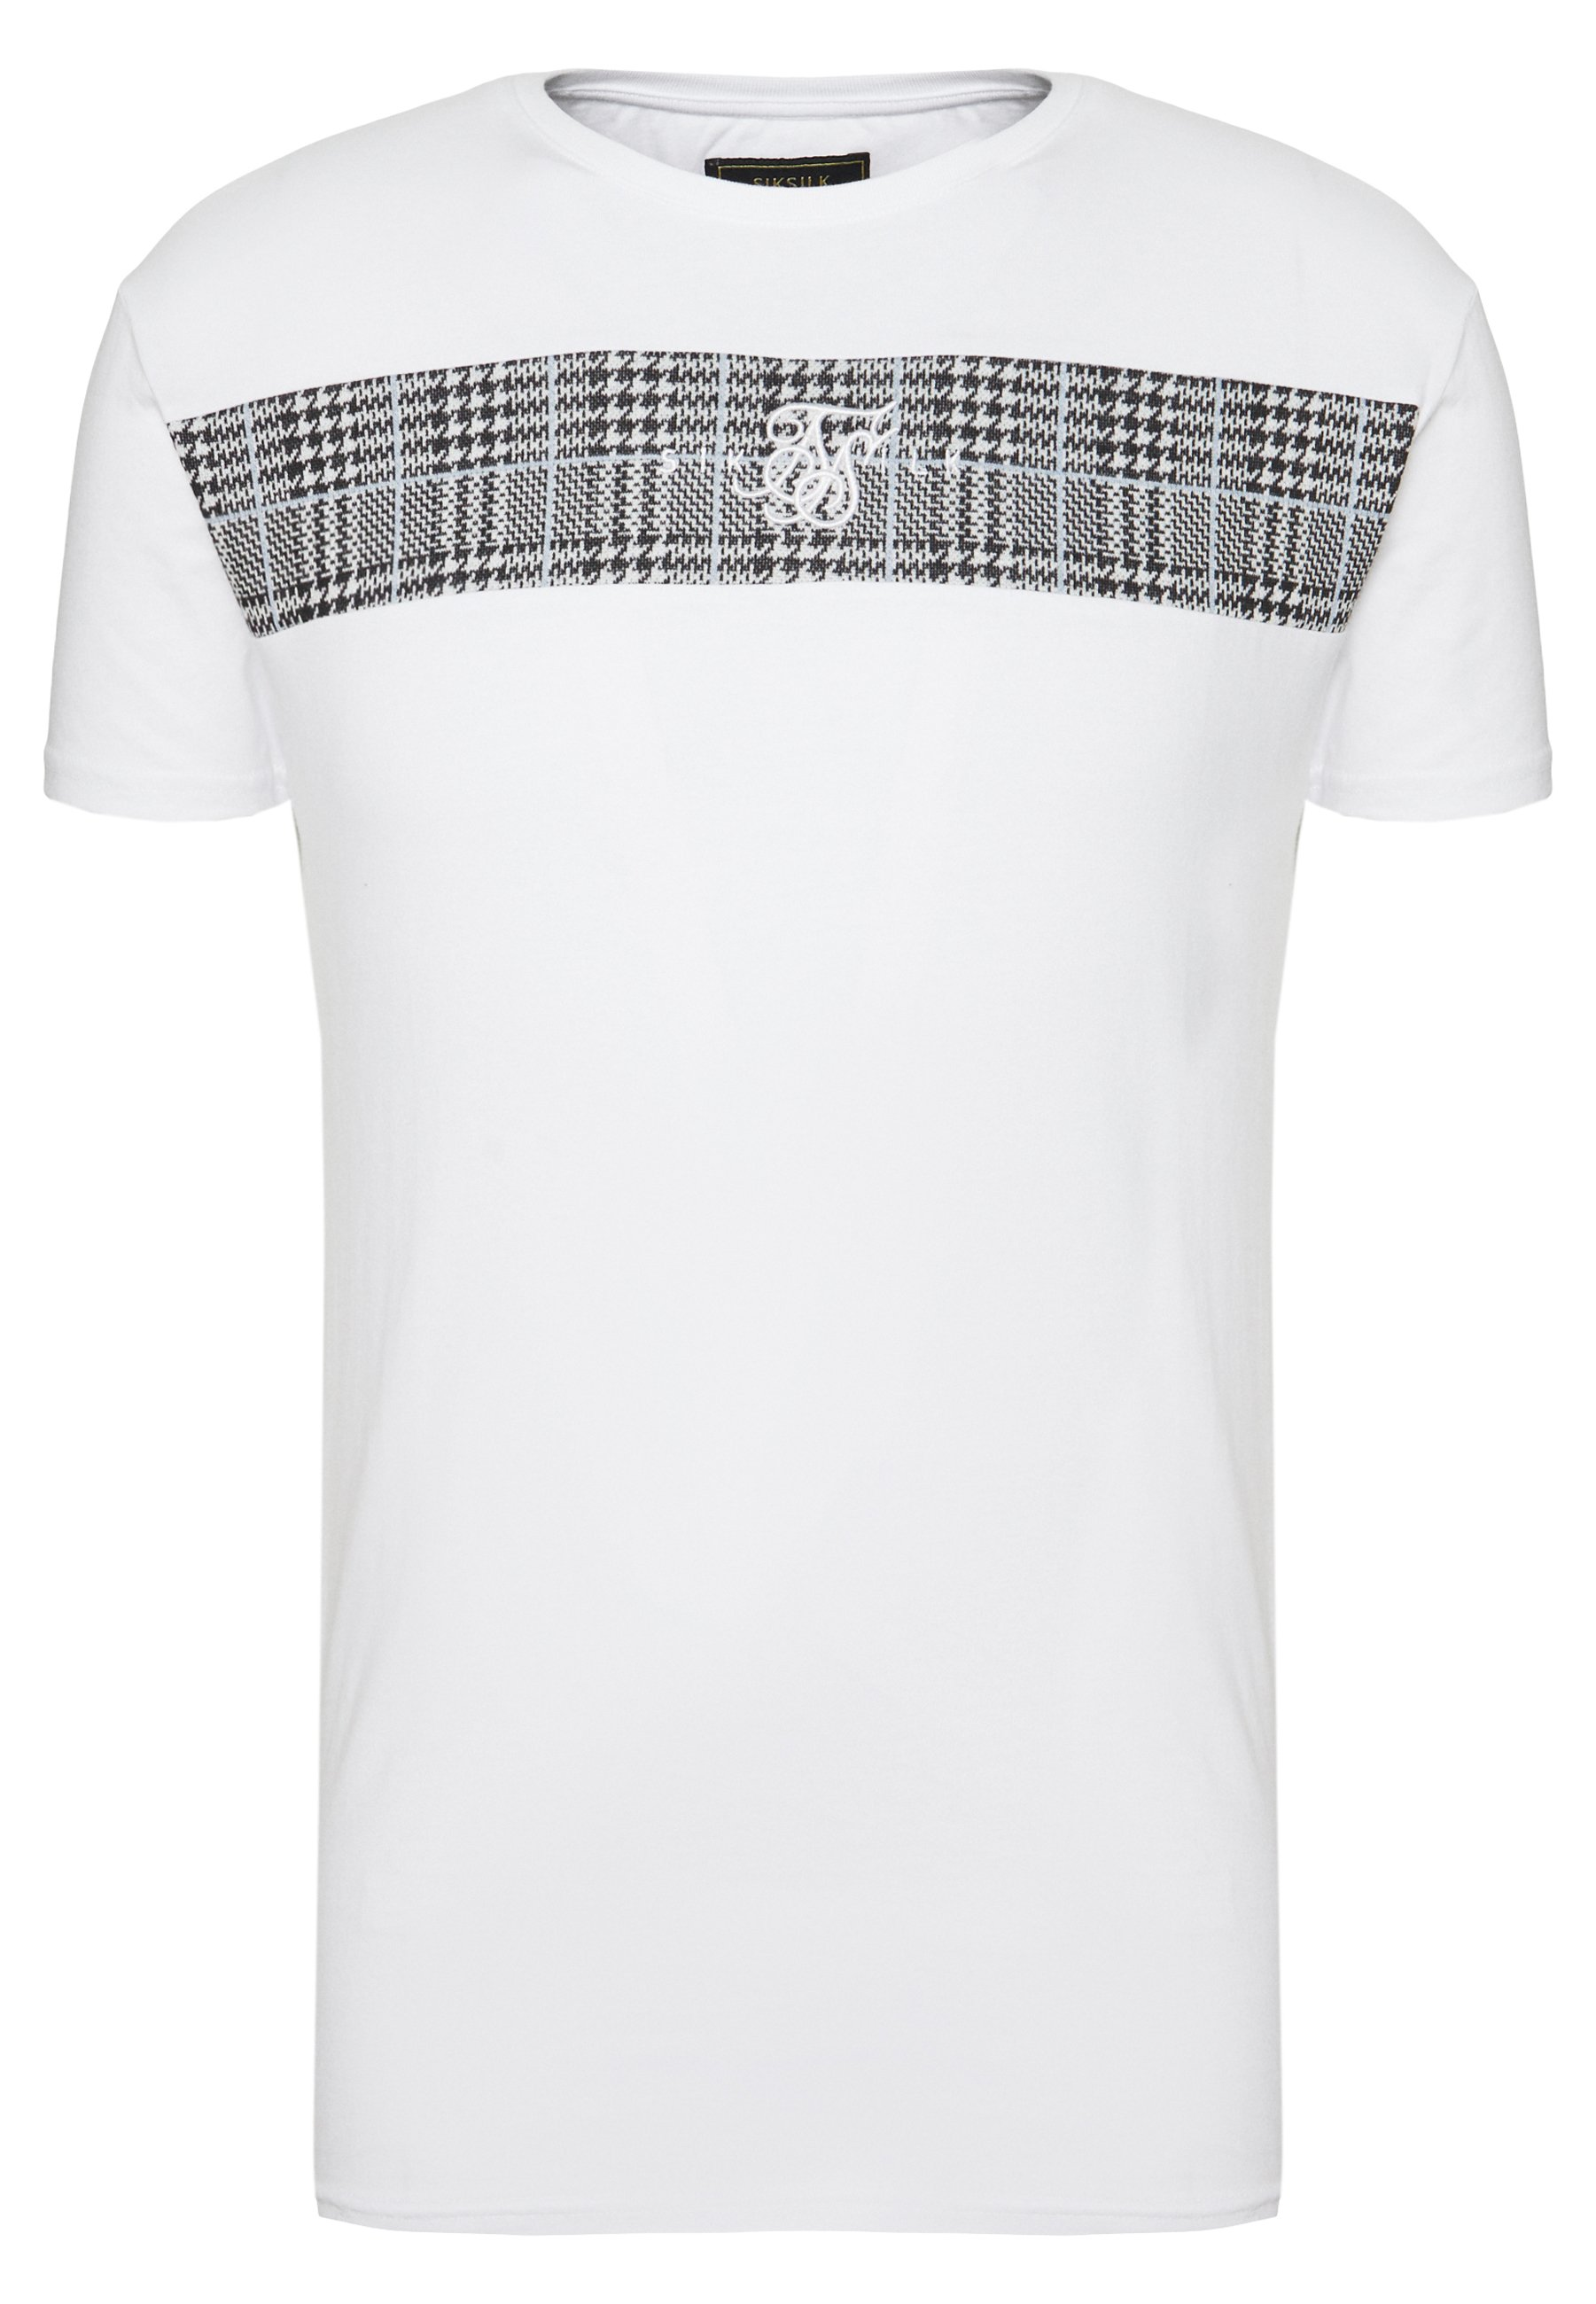 Siksilk Panel Smart Tee - T-shirt Con Stampa White Dnh0A74